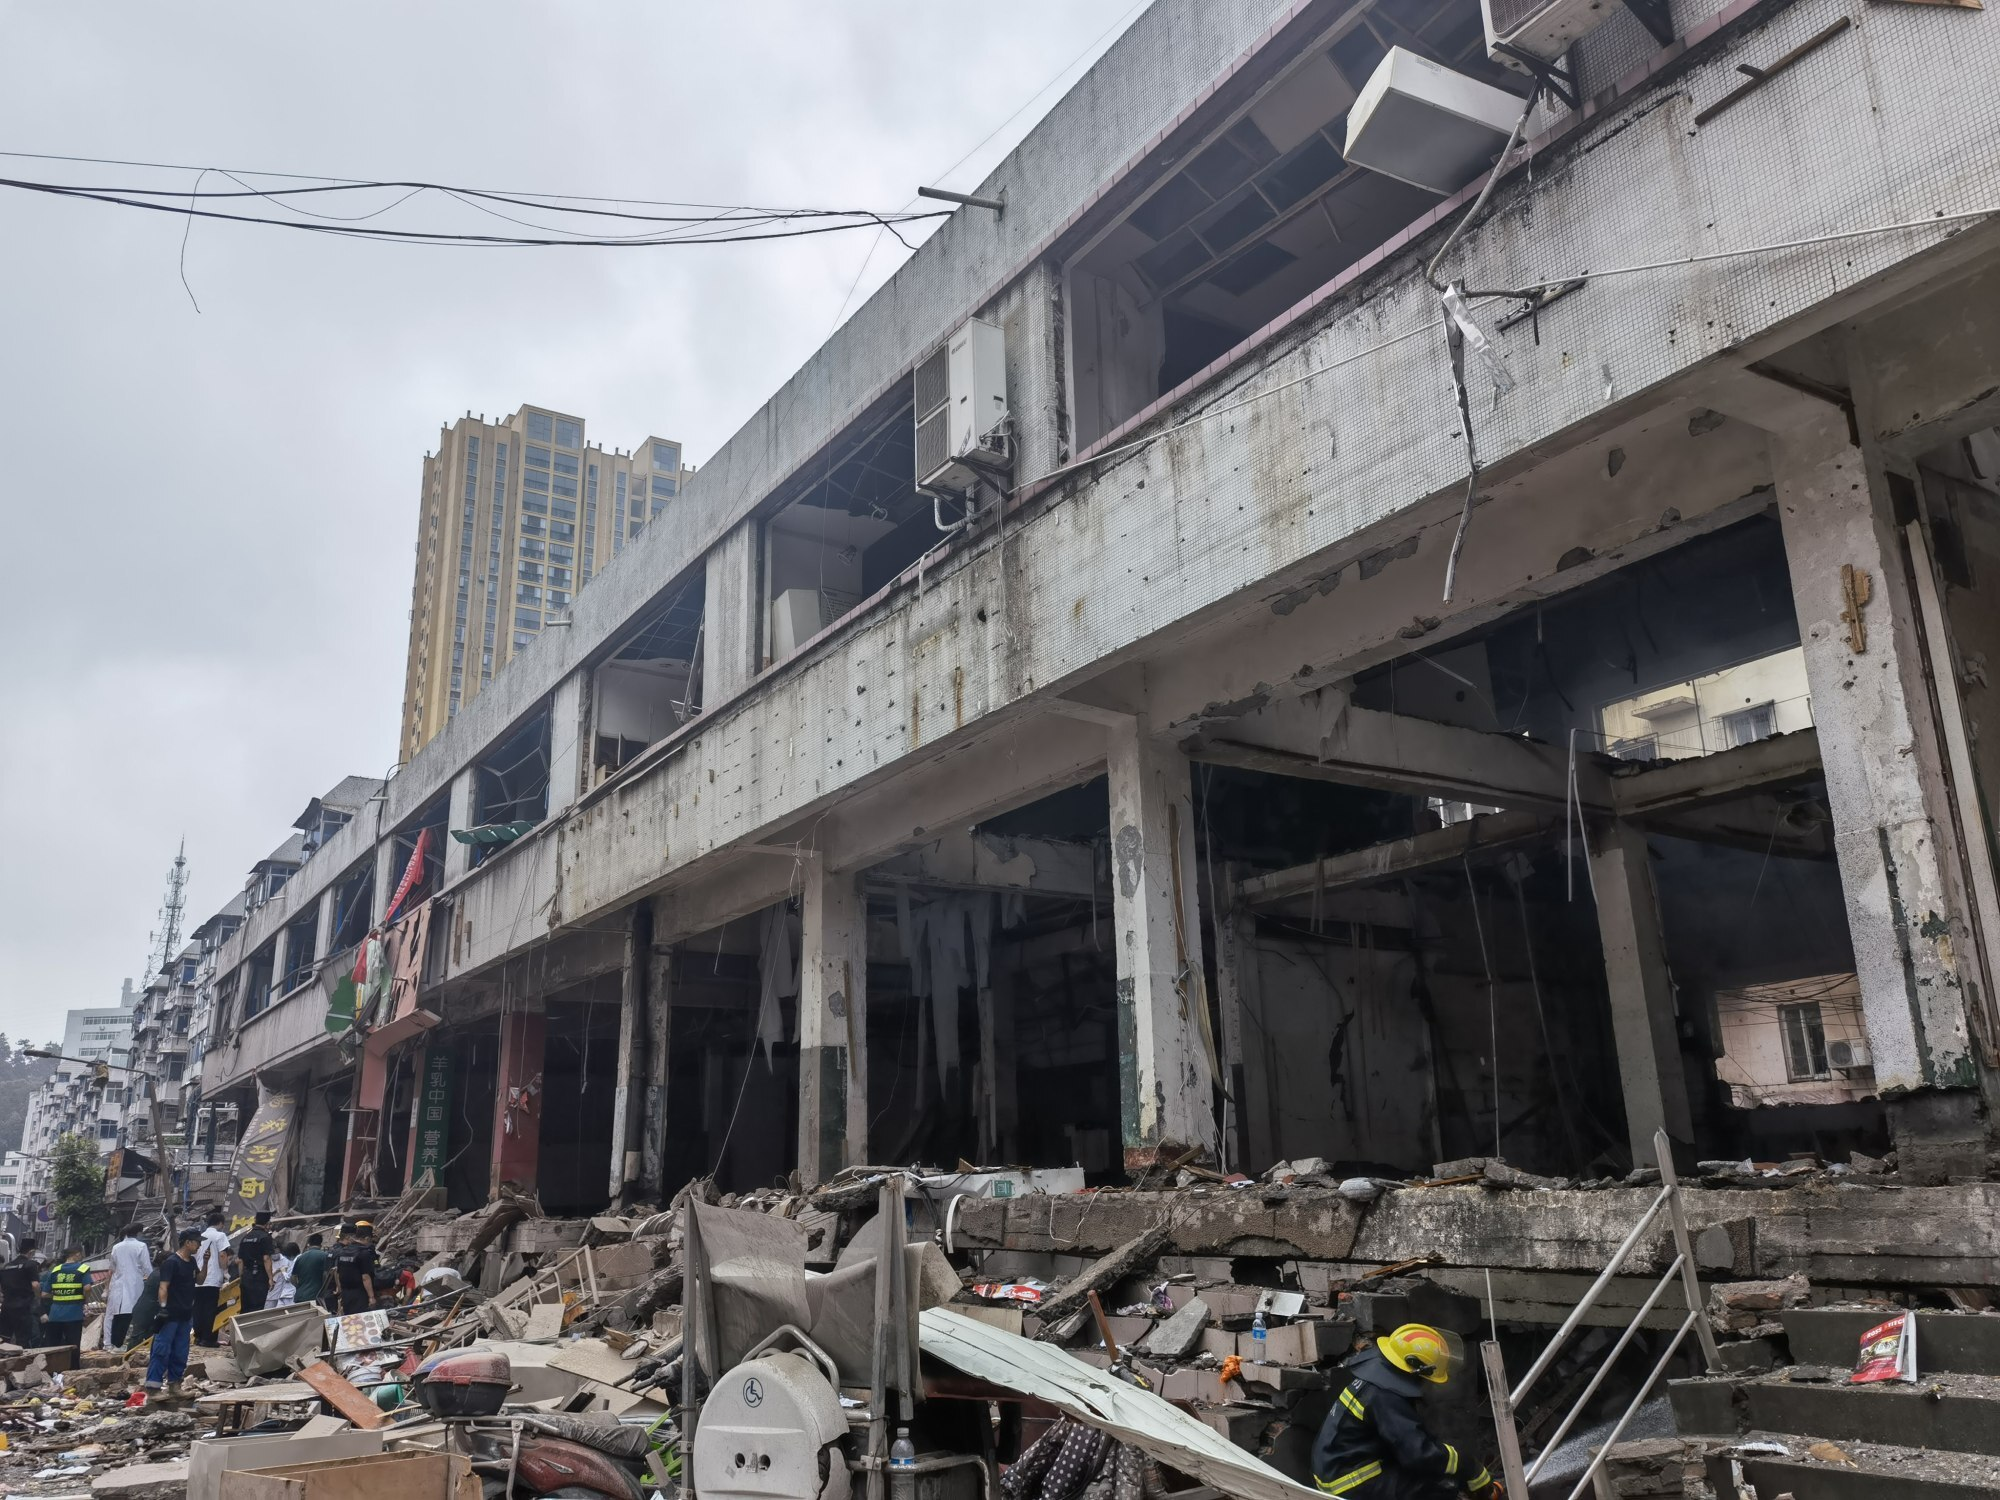 Rescuers search the rubble after the blast. Photo: Xinhua